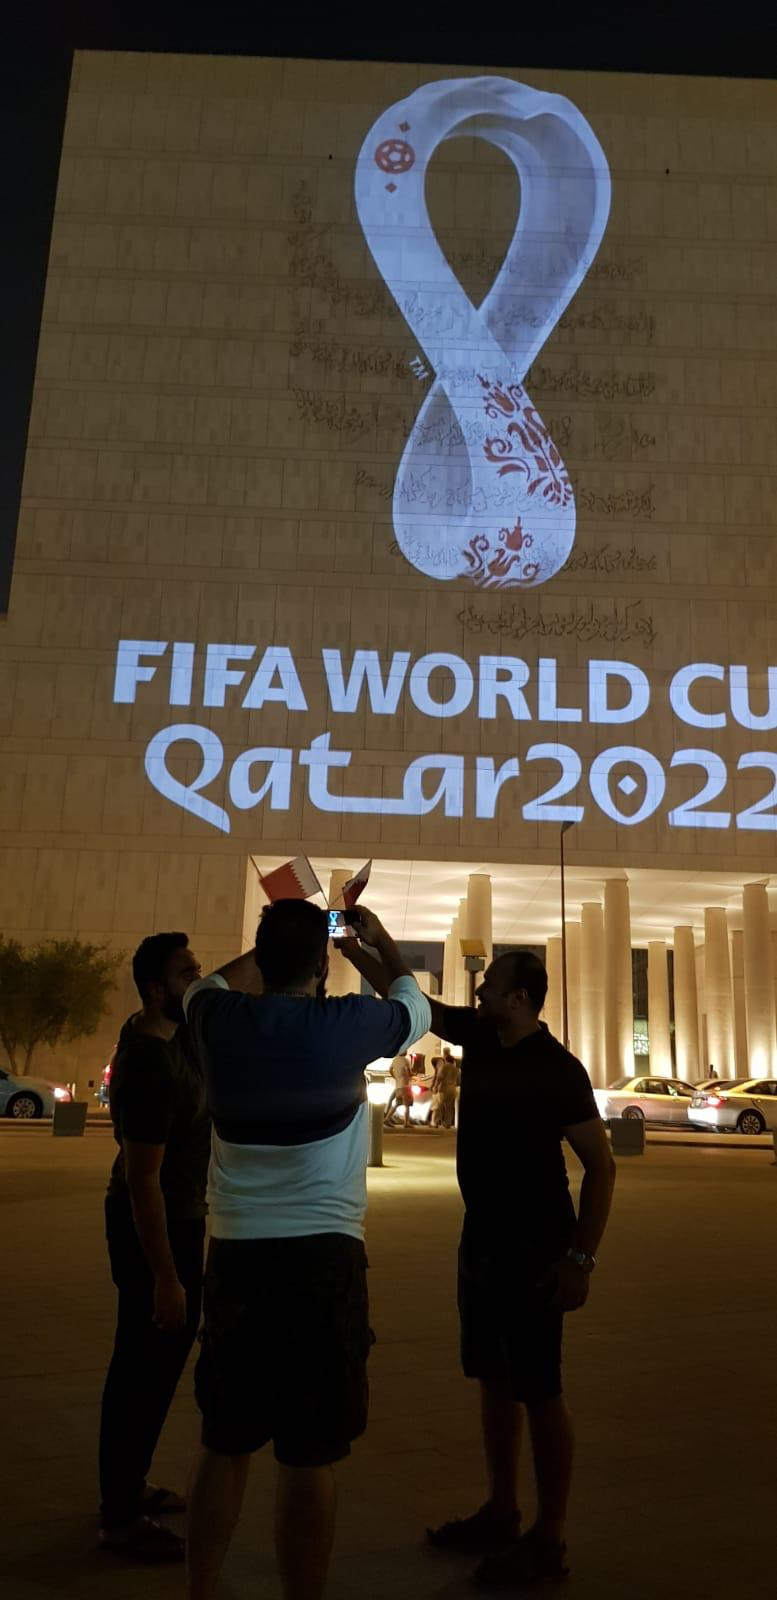 WATCH: SC reveals official logo of the FIFA World Cup Qatar